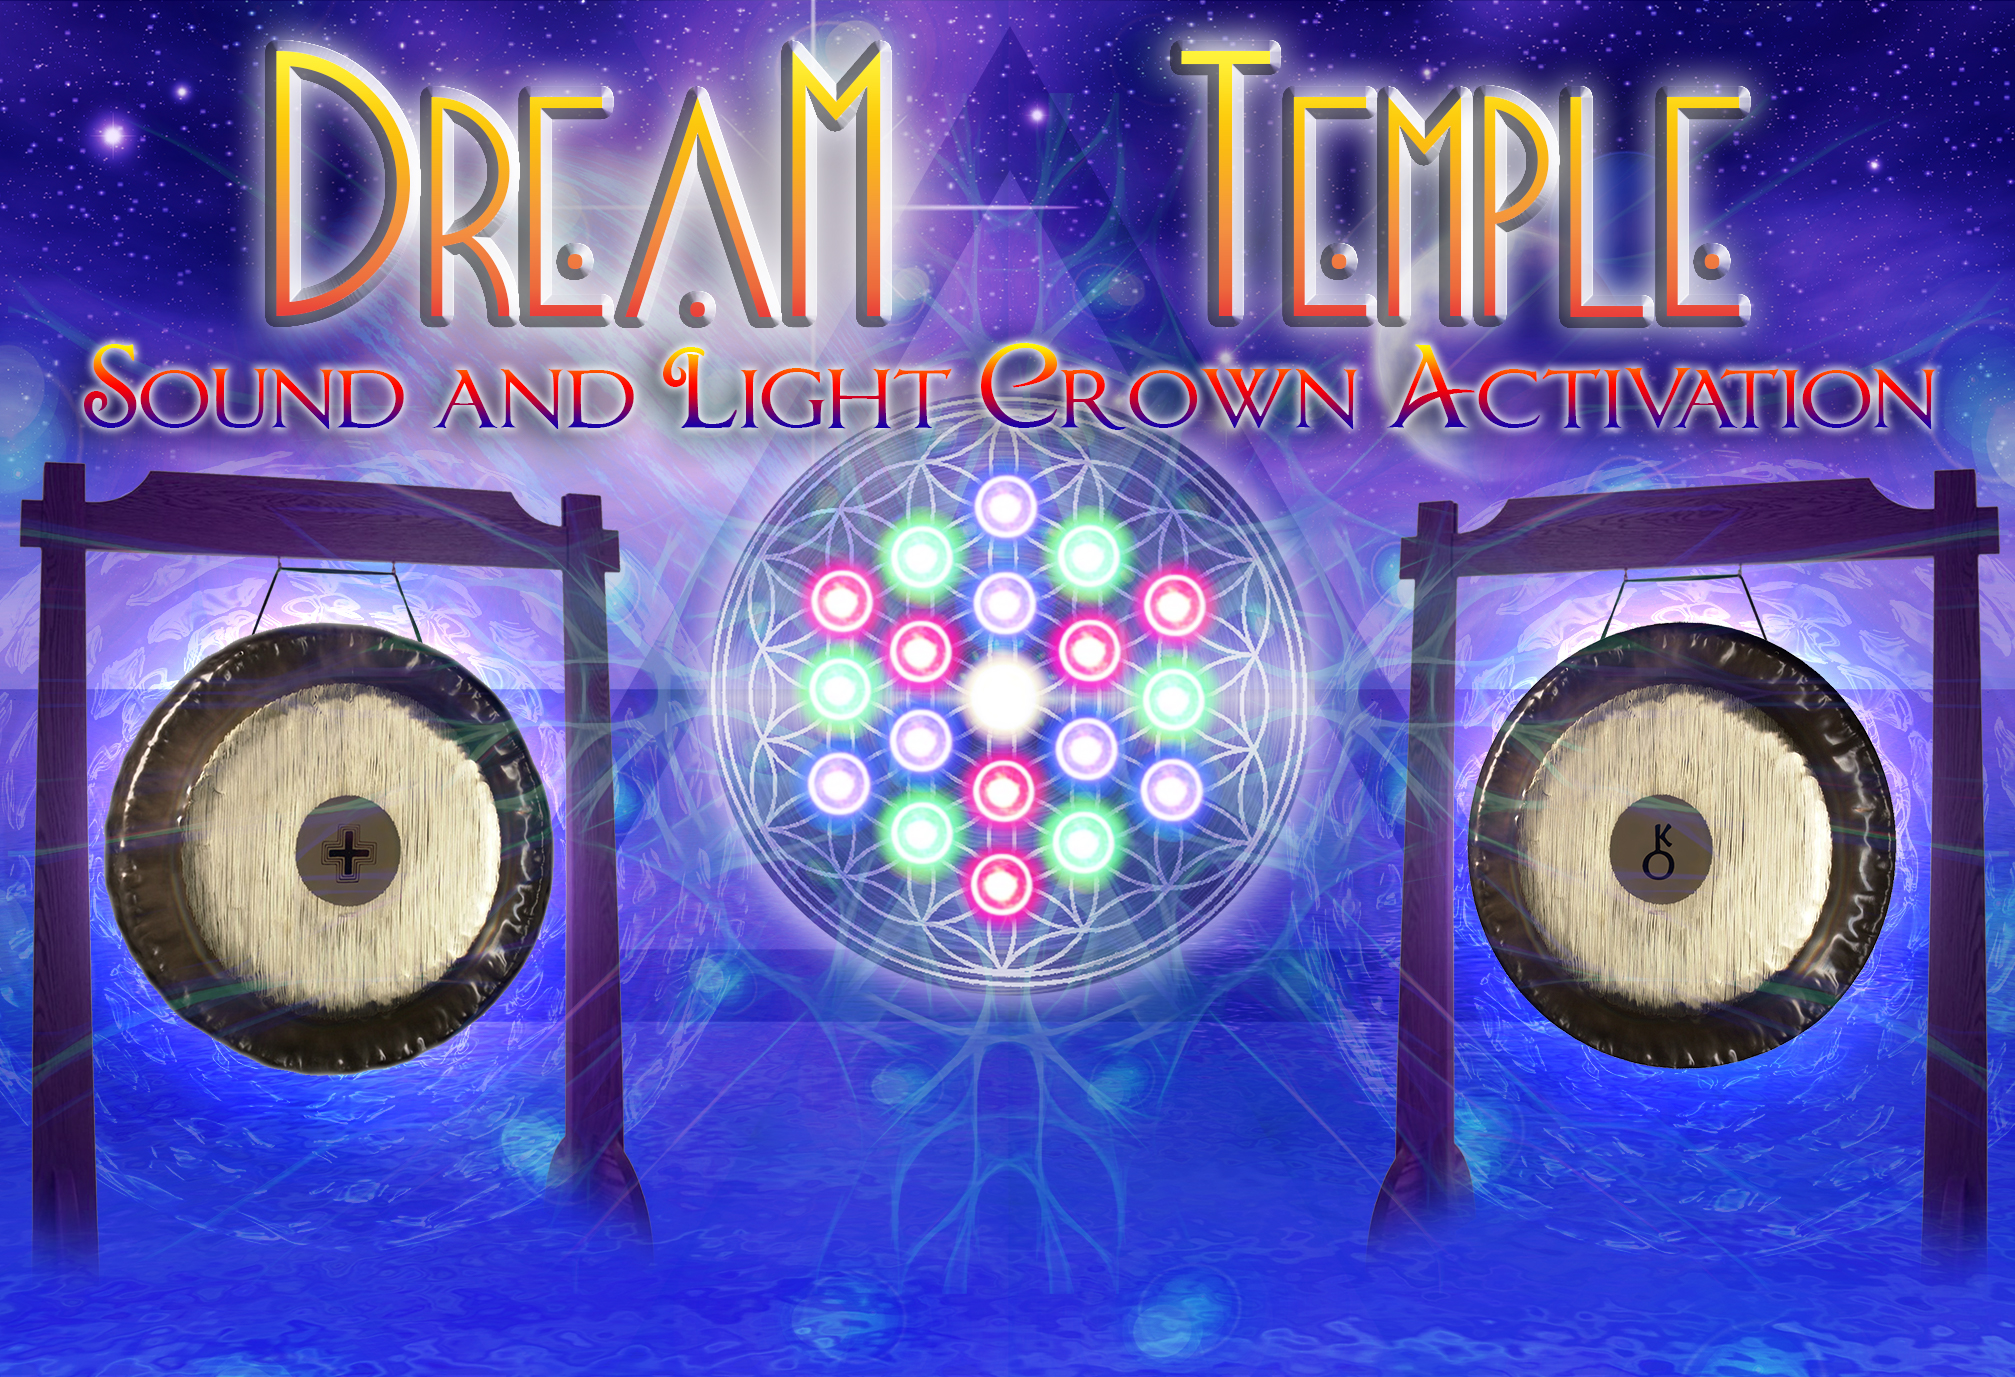 Dream Temple Flyer.jpg